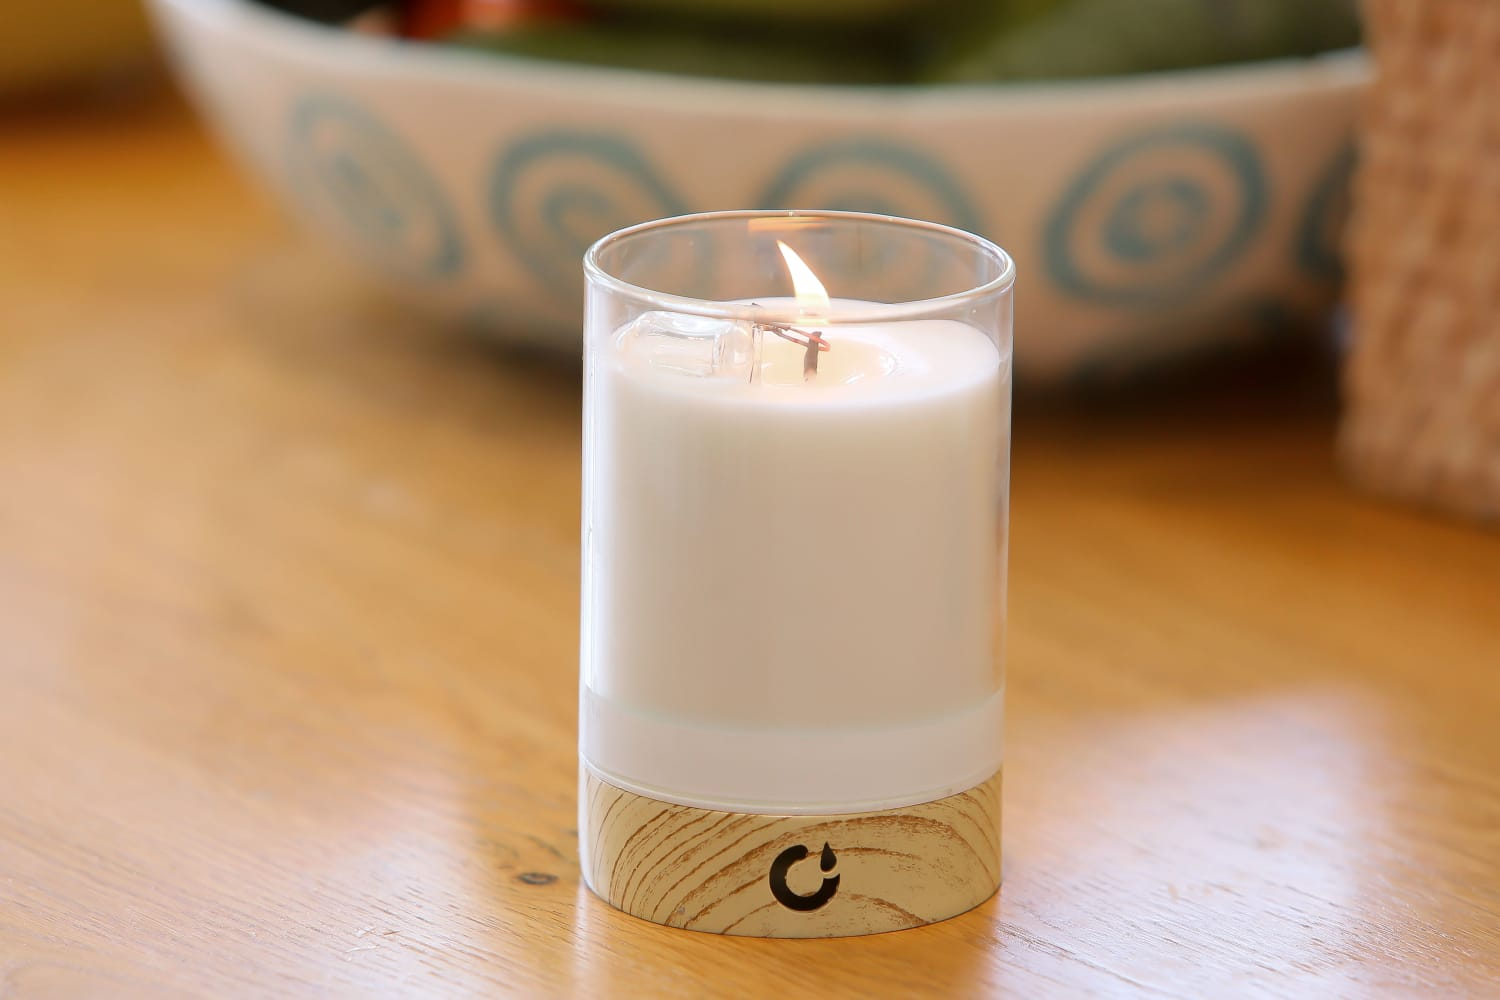 You Can Light This Candle With Your Phone, and It's Officially the Future